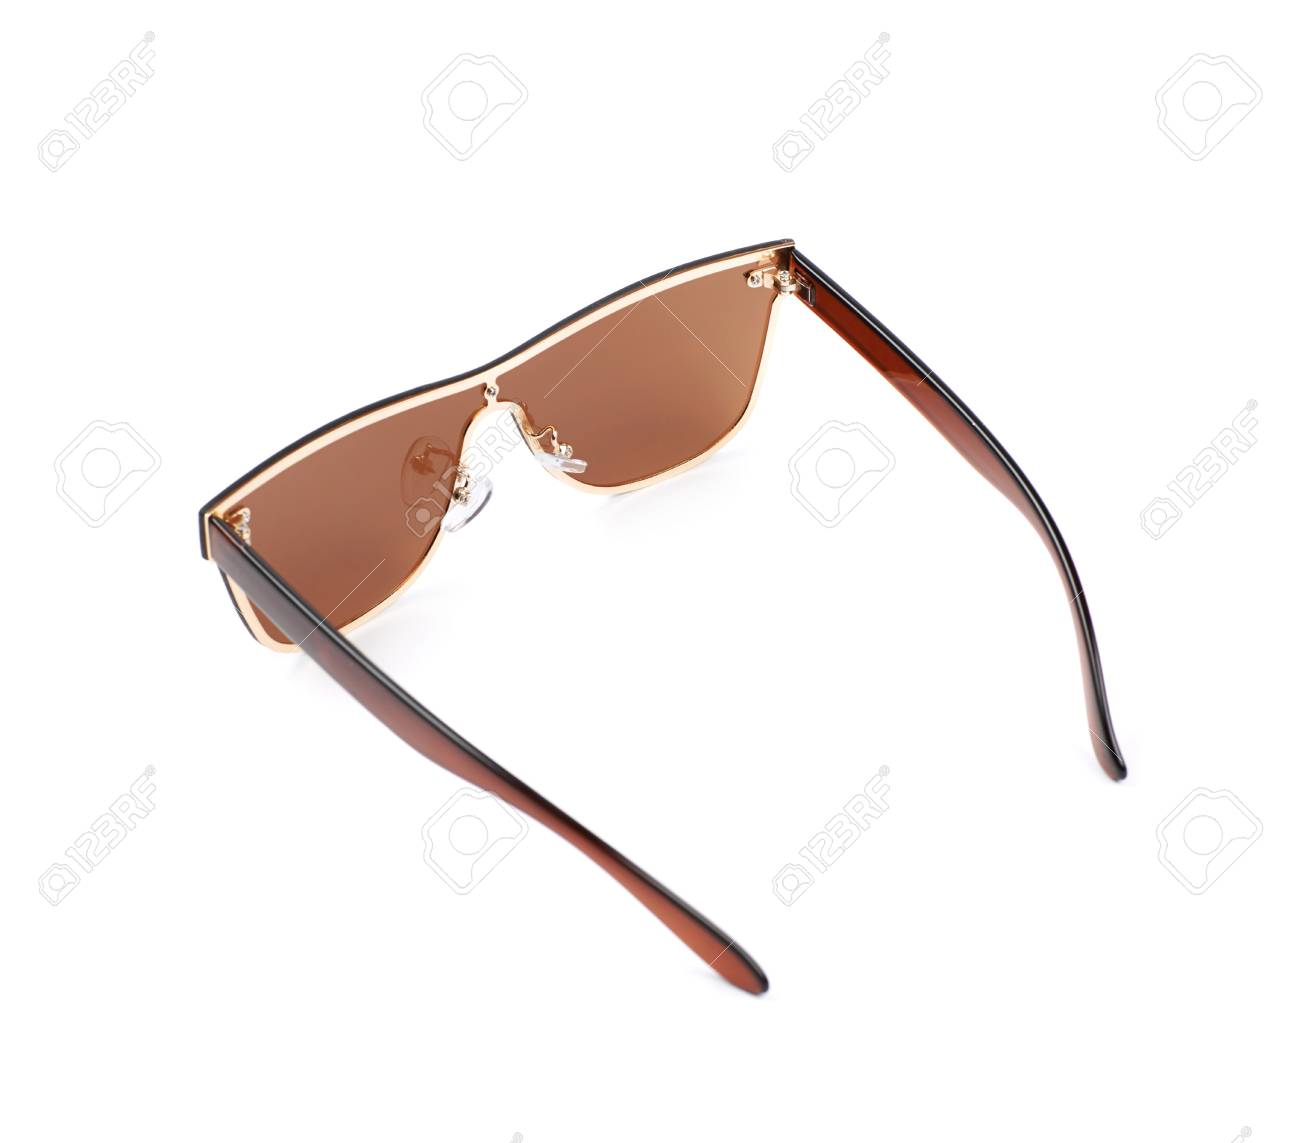 be1414b9978 Pair of brown shade sunglasses isolated over the white background Stock  Photo - 59653185